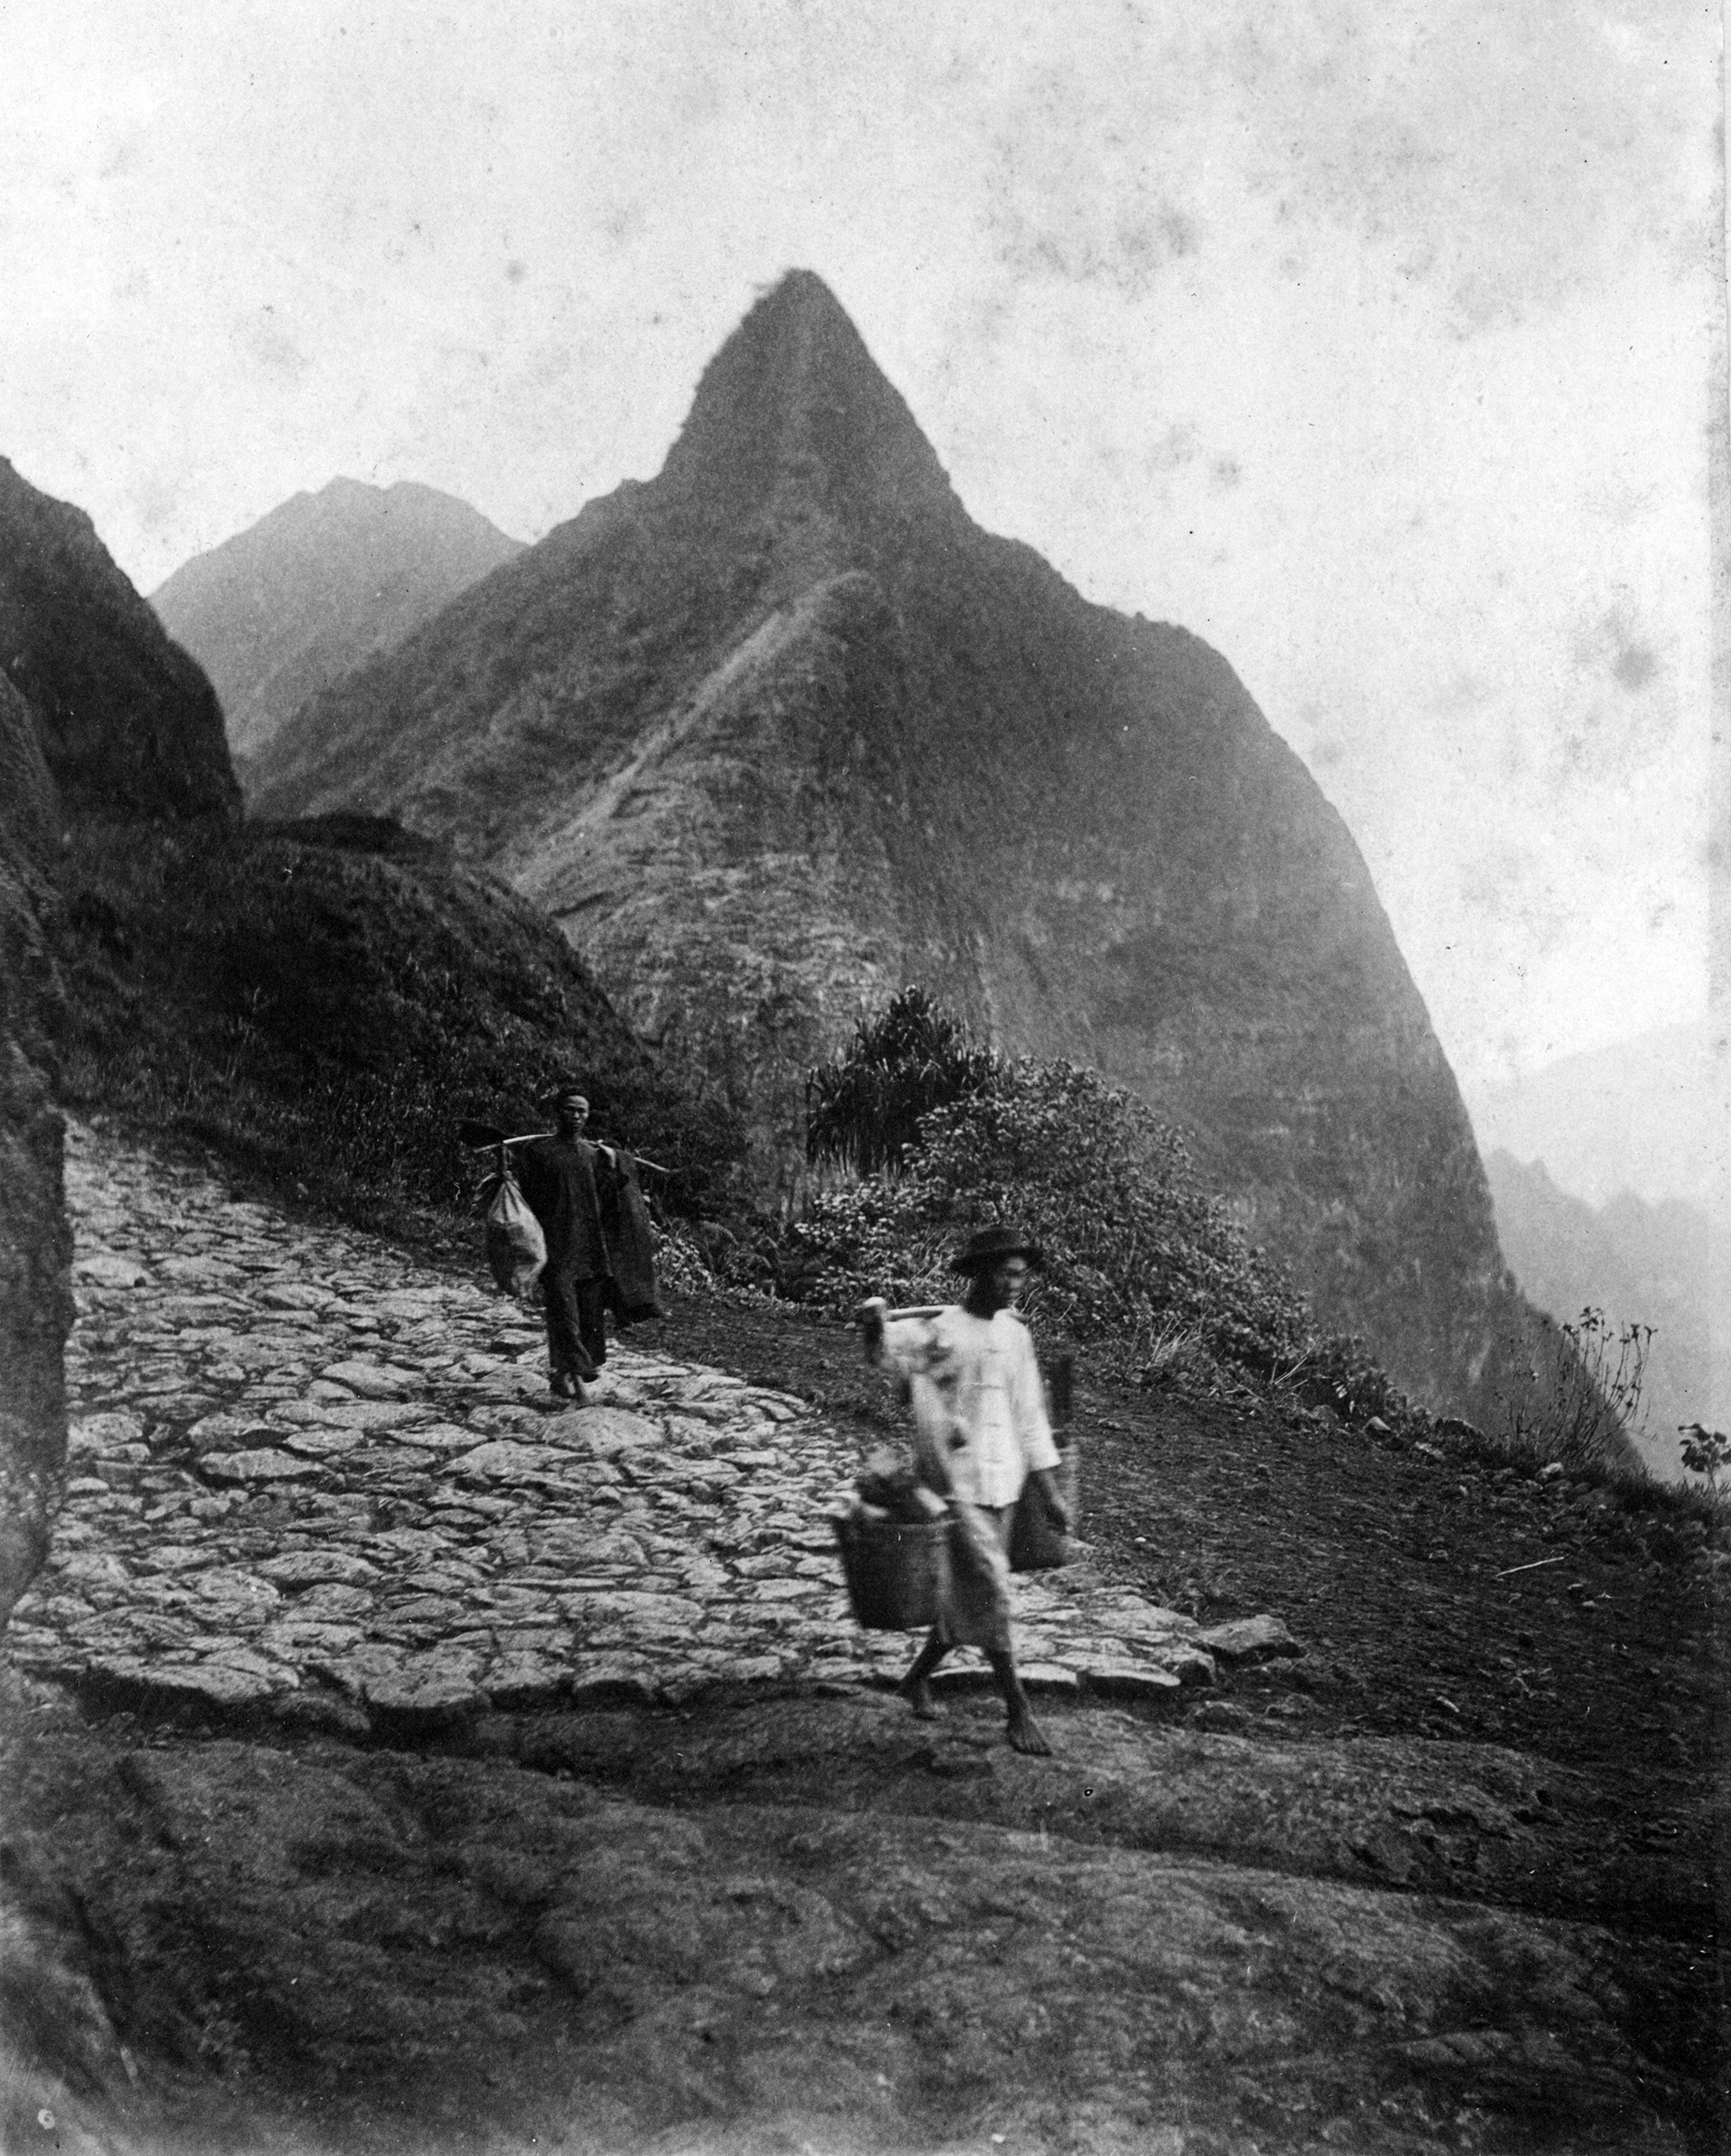 [Men with carrying poles] Walking over Nuʻuanu Pali Road to Kailua; Honolulu, Hawaiʻi, 1886. Photo by Alfred Mitchell.